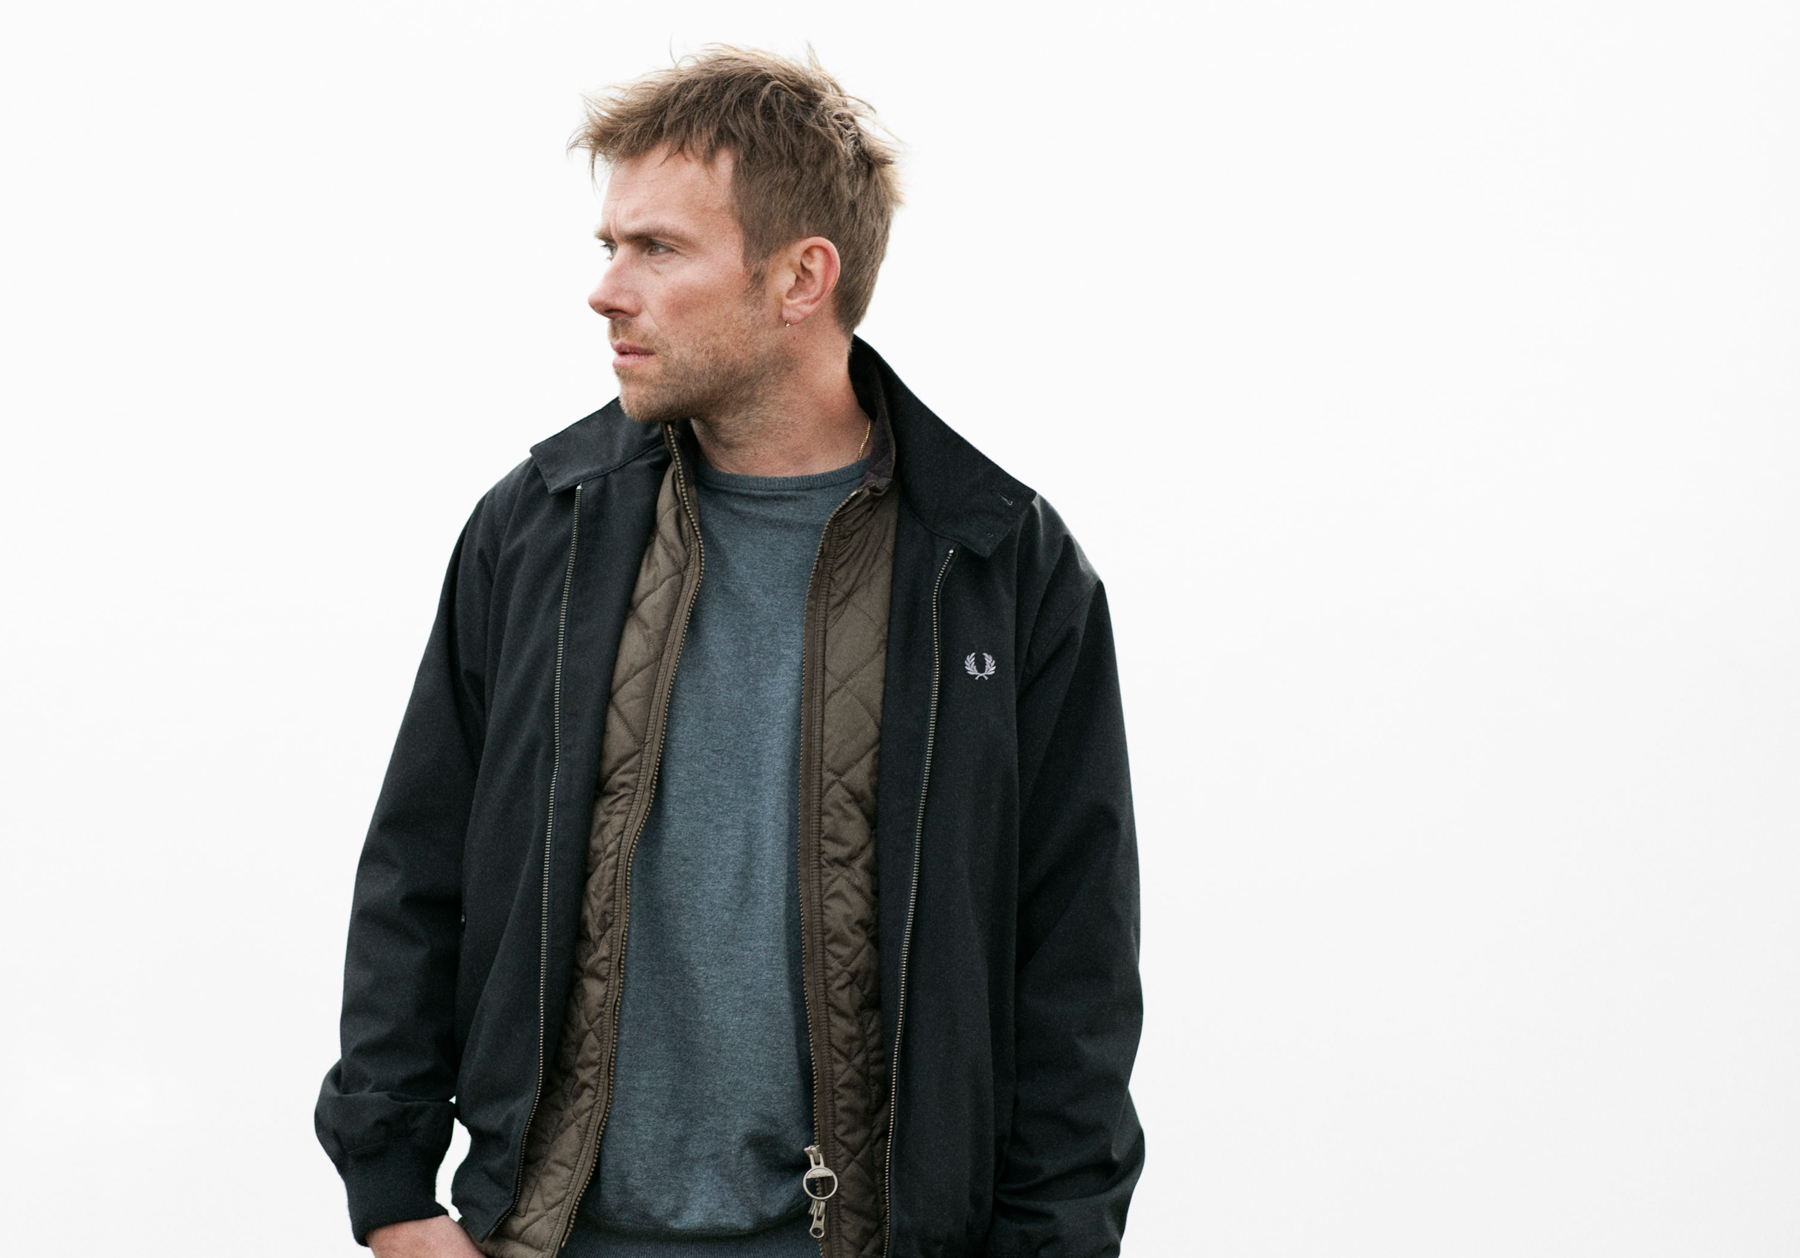 Damon Albarn Explains Waiting 25 Years to Go Solo